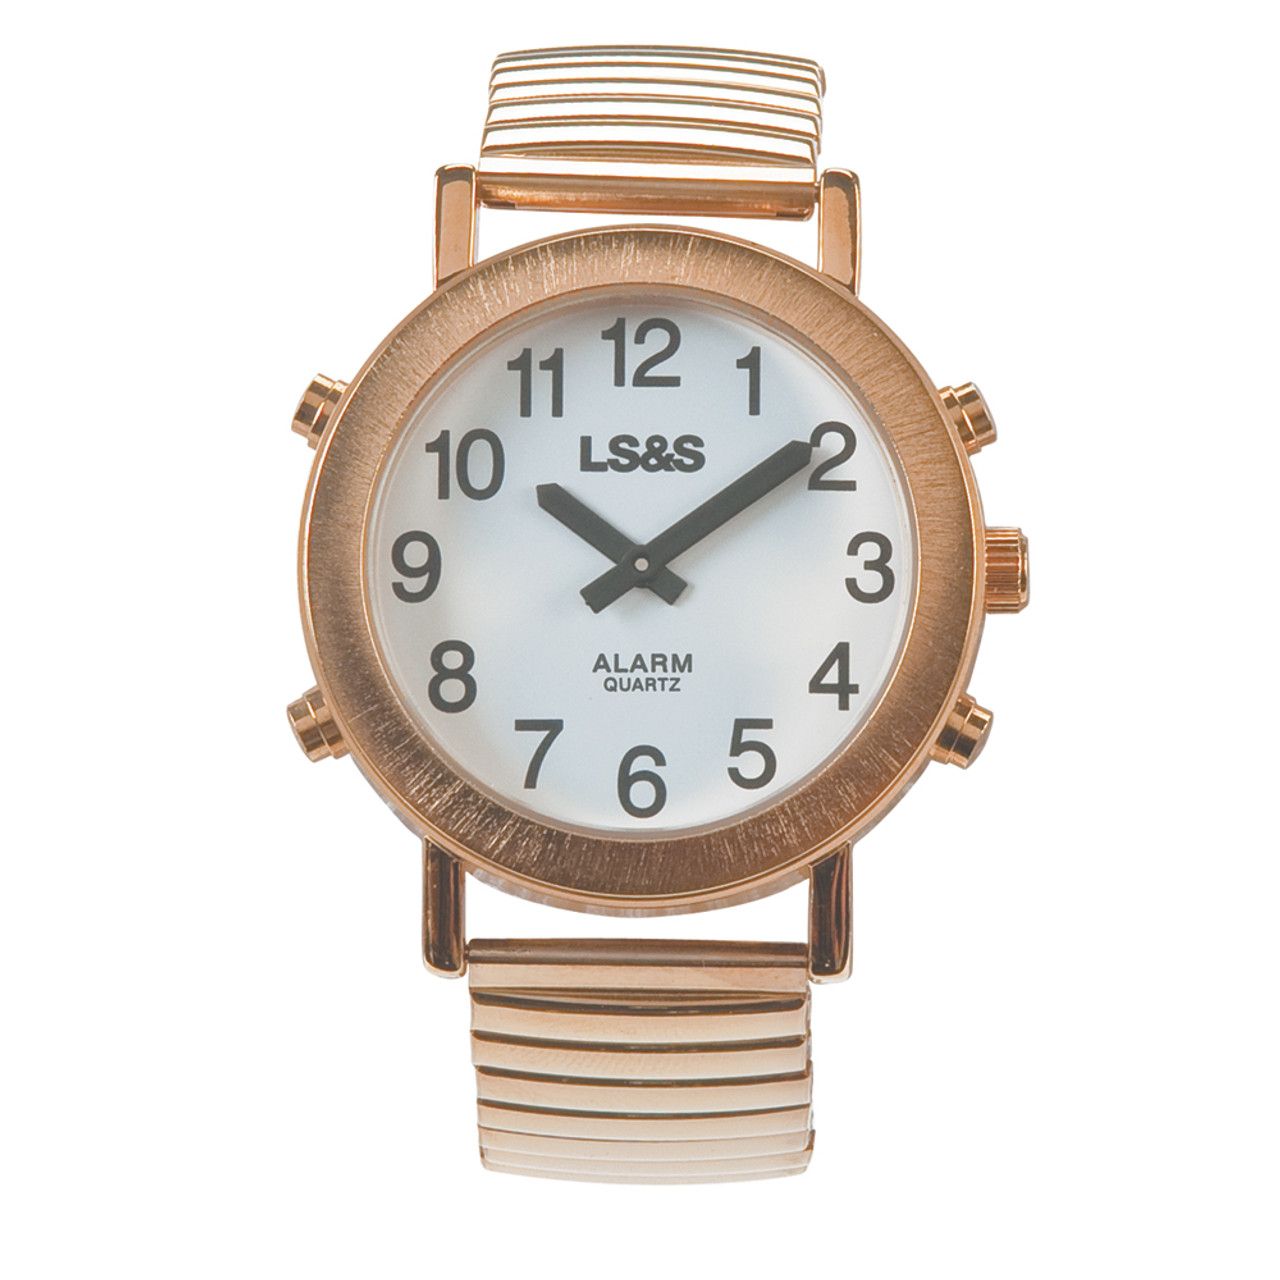 Talking Watch White face, gold tone, expansion band